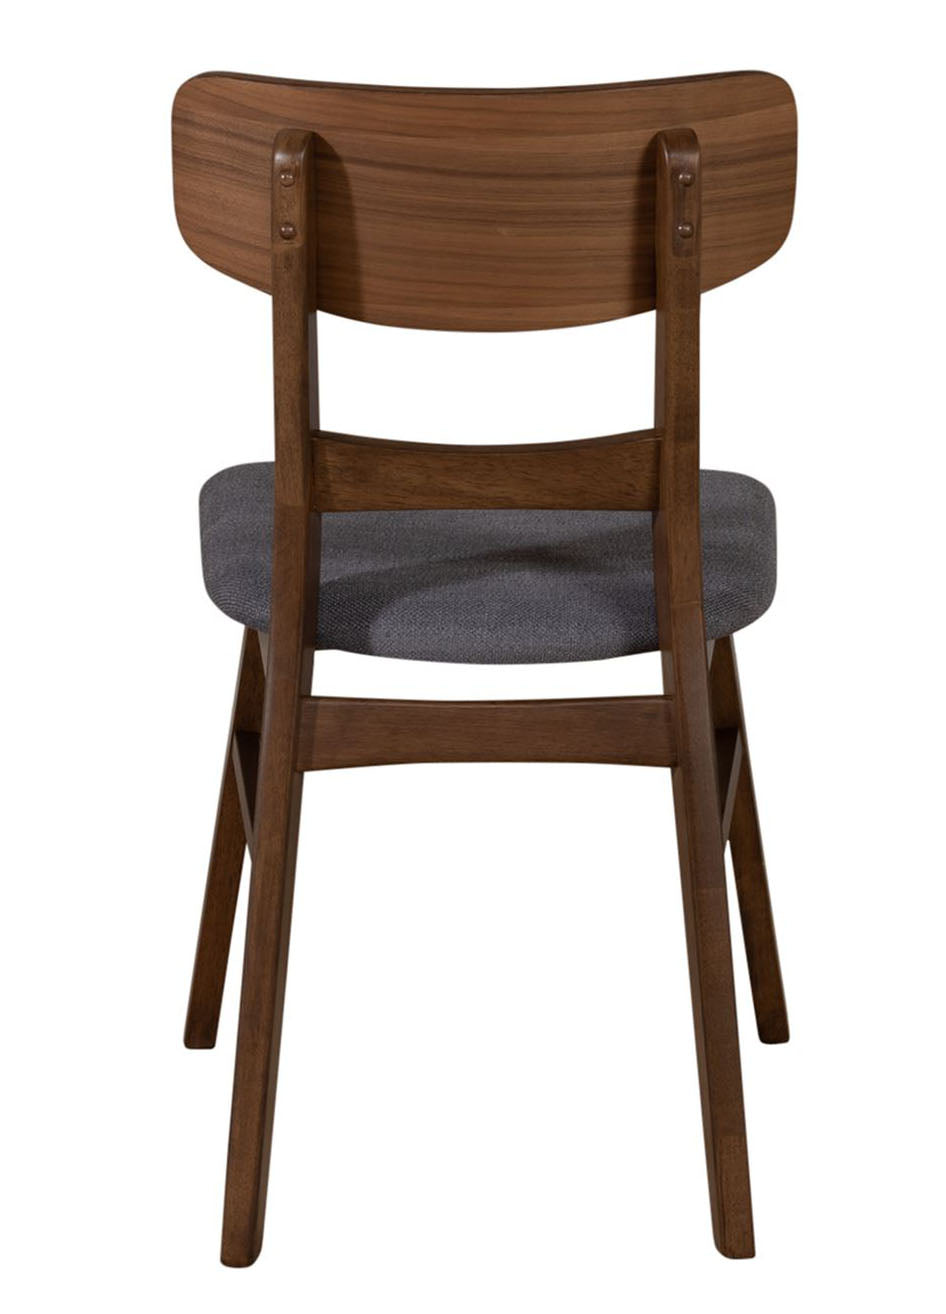 Space Savers Panel Back Dining Chair - MJM Furniture